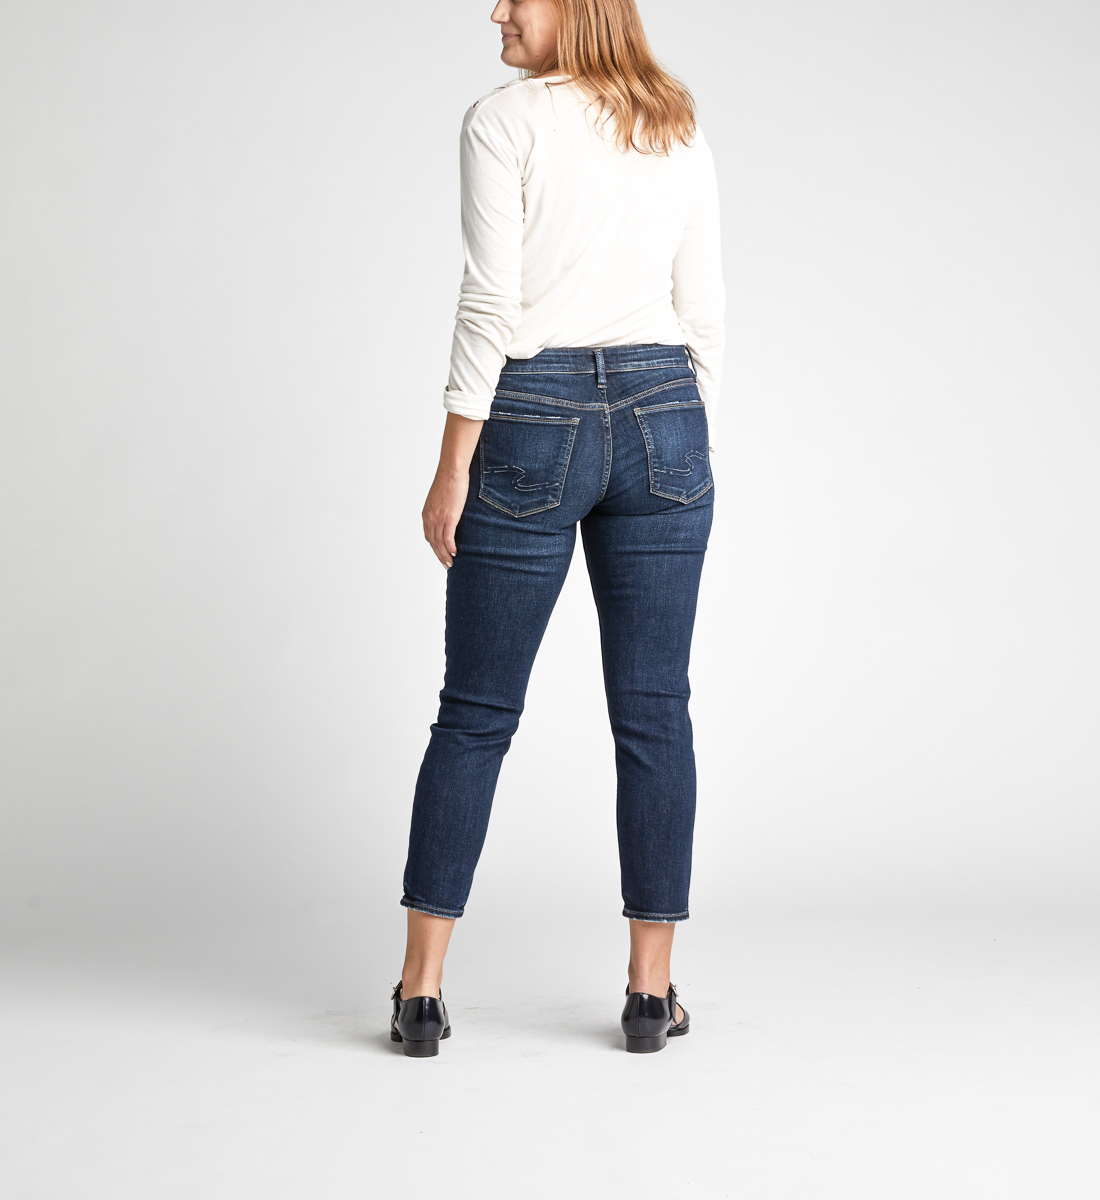 Avery High Rise Skinny Crop Jeans Alt Image 3